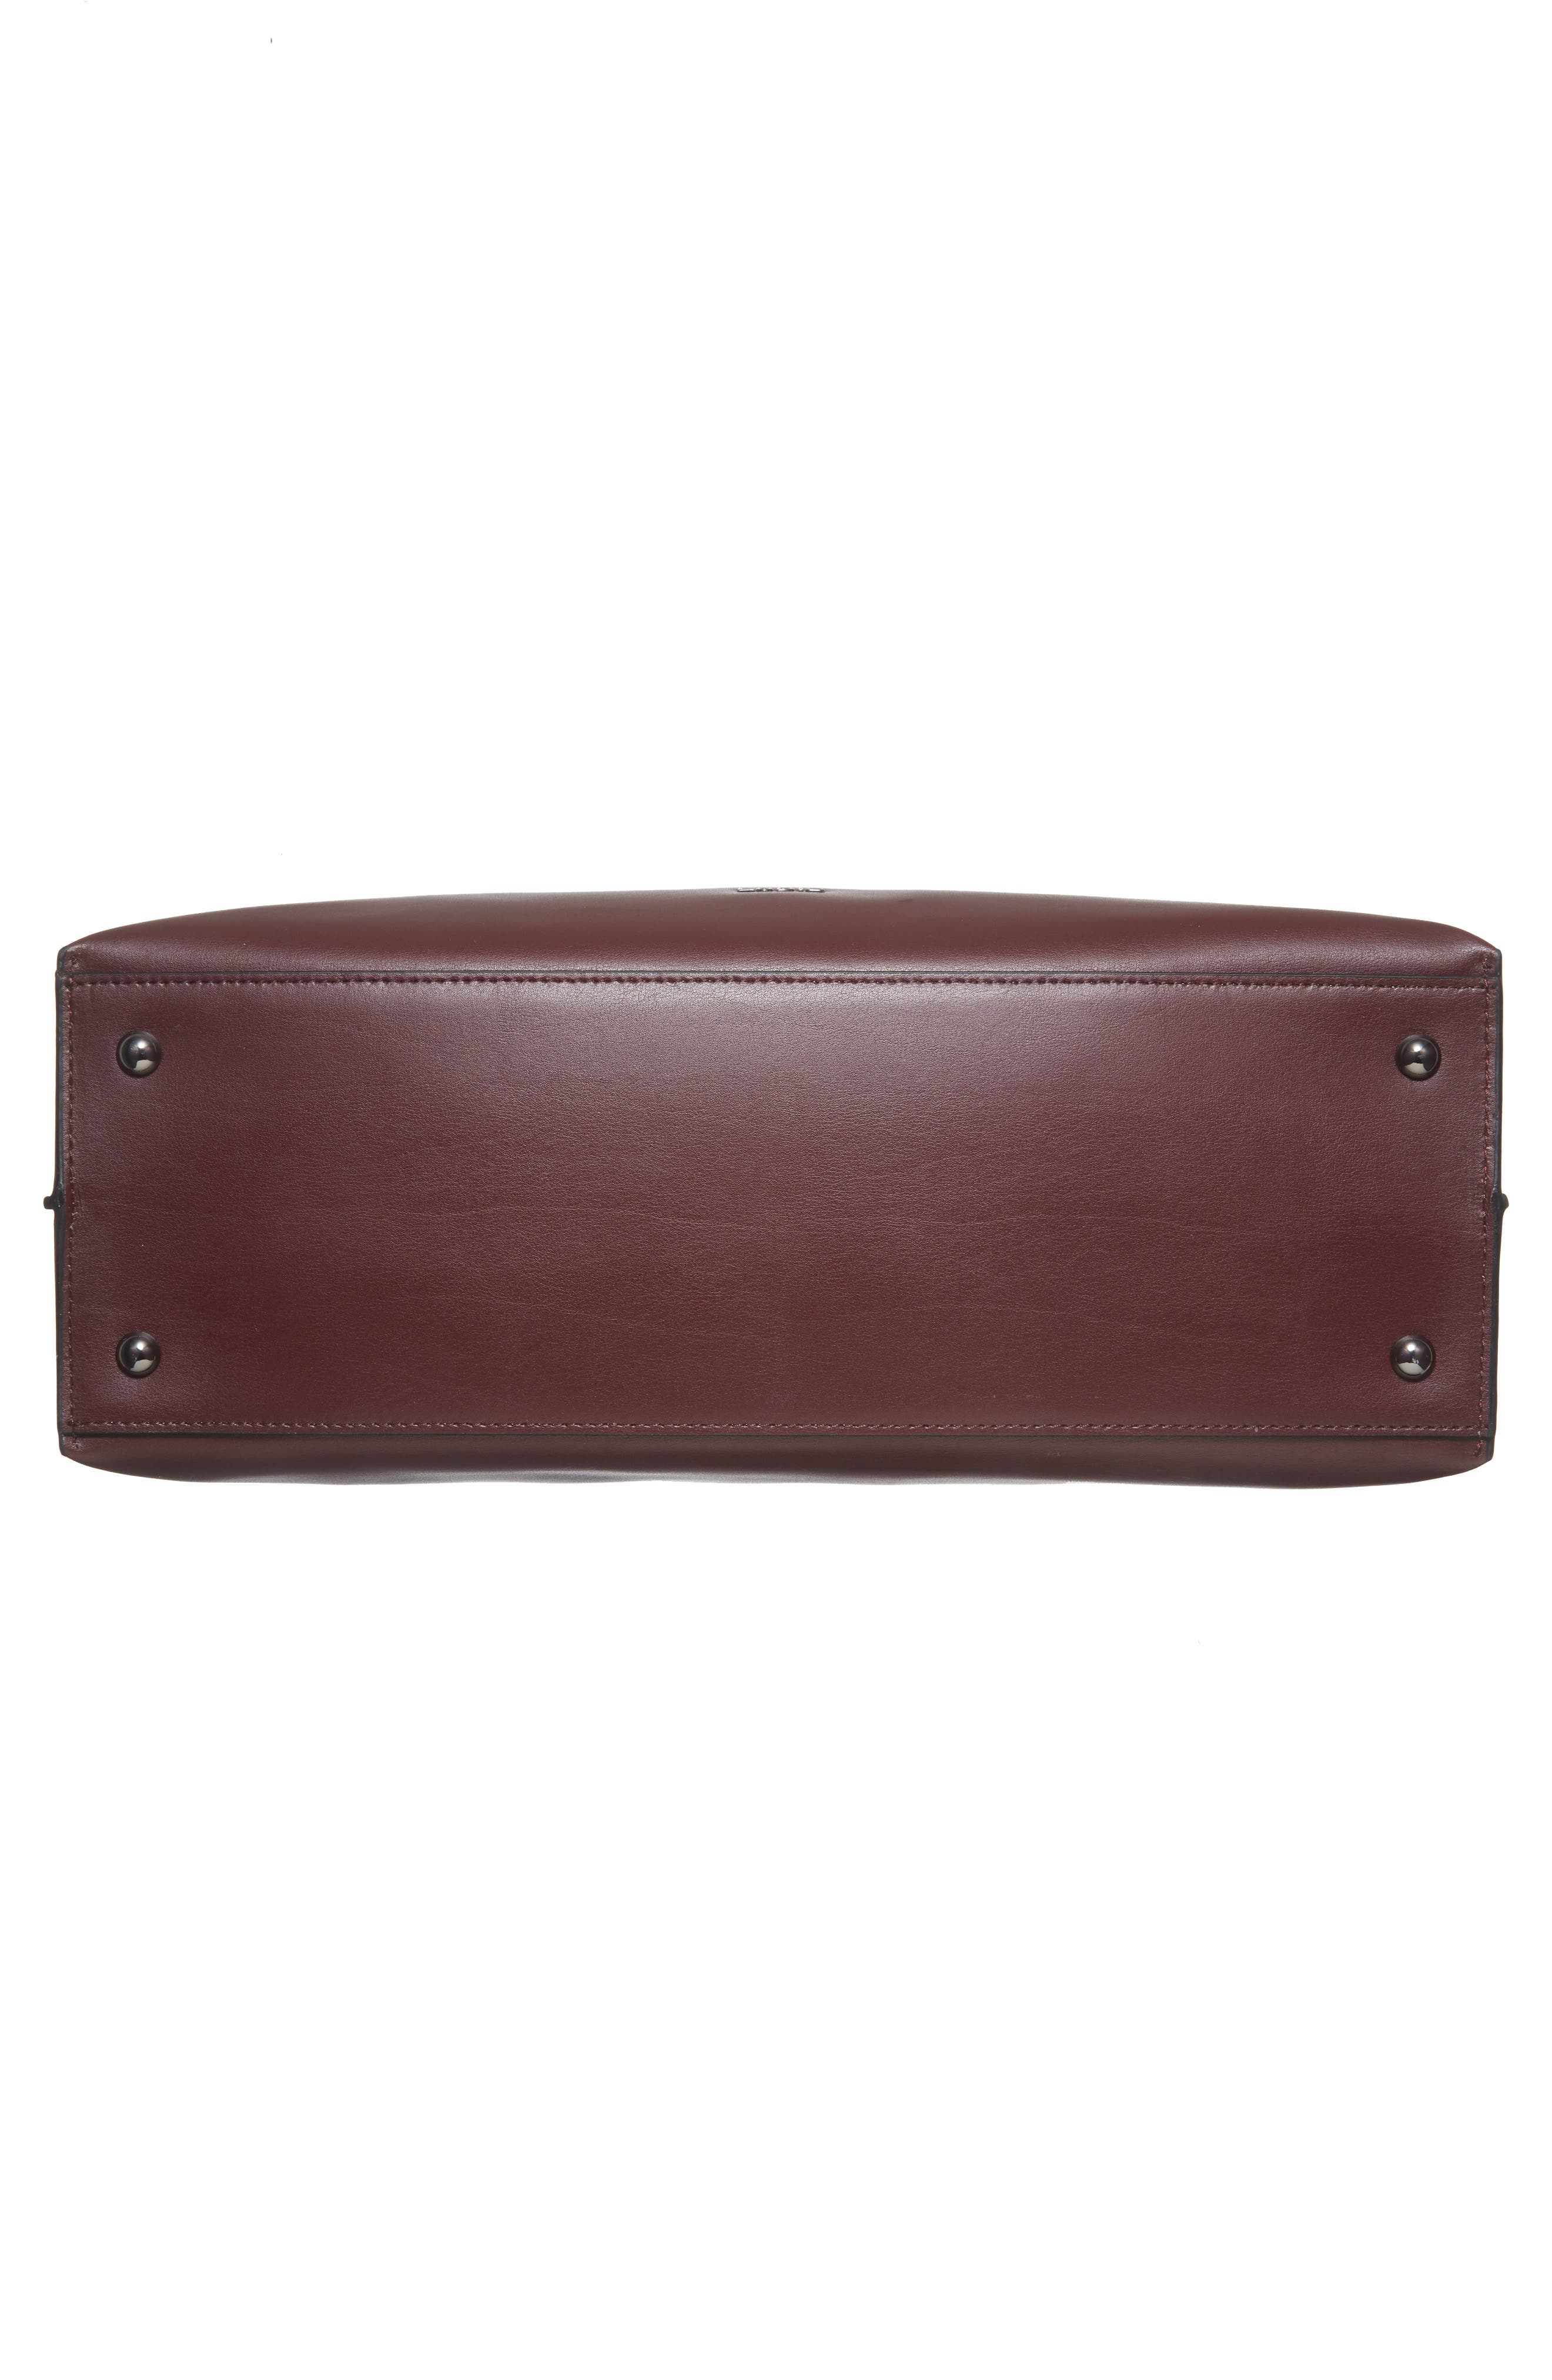 LODIS Silicon Valley - Lorrain RFID Leather Satchel,                             Alternate thumbnail 18, color,